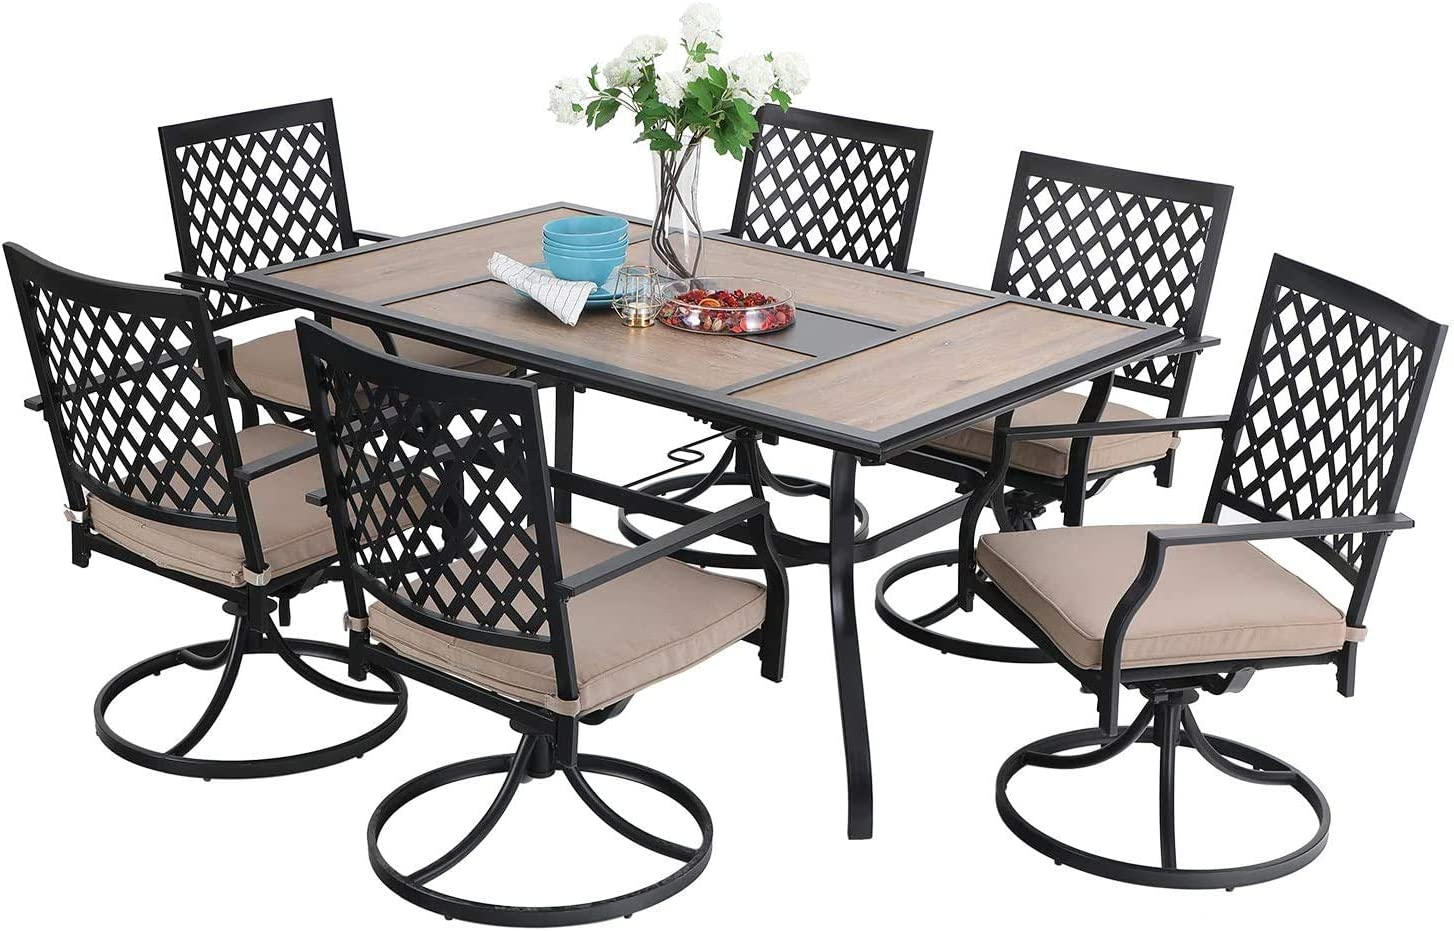 Sophia William Patio Dining Set 7 Pieces Outdoor Metal Furniture Set